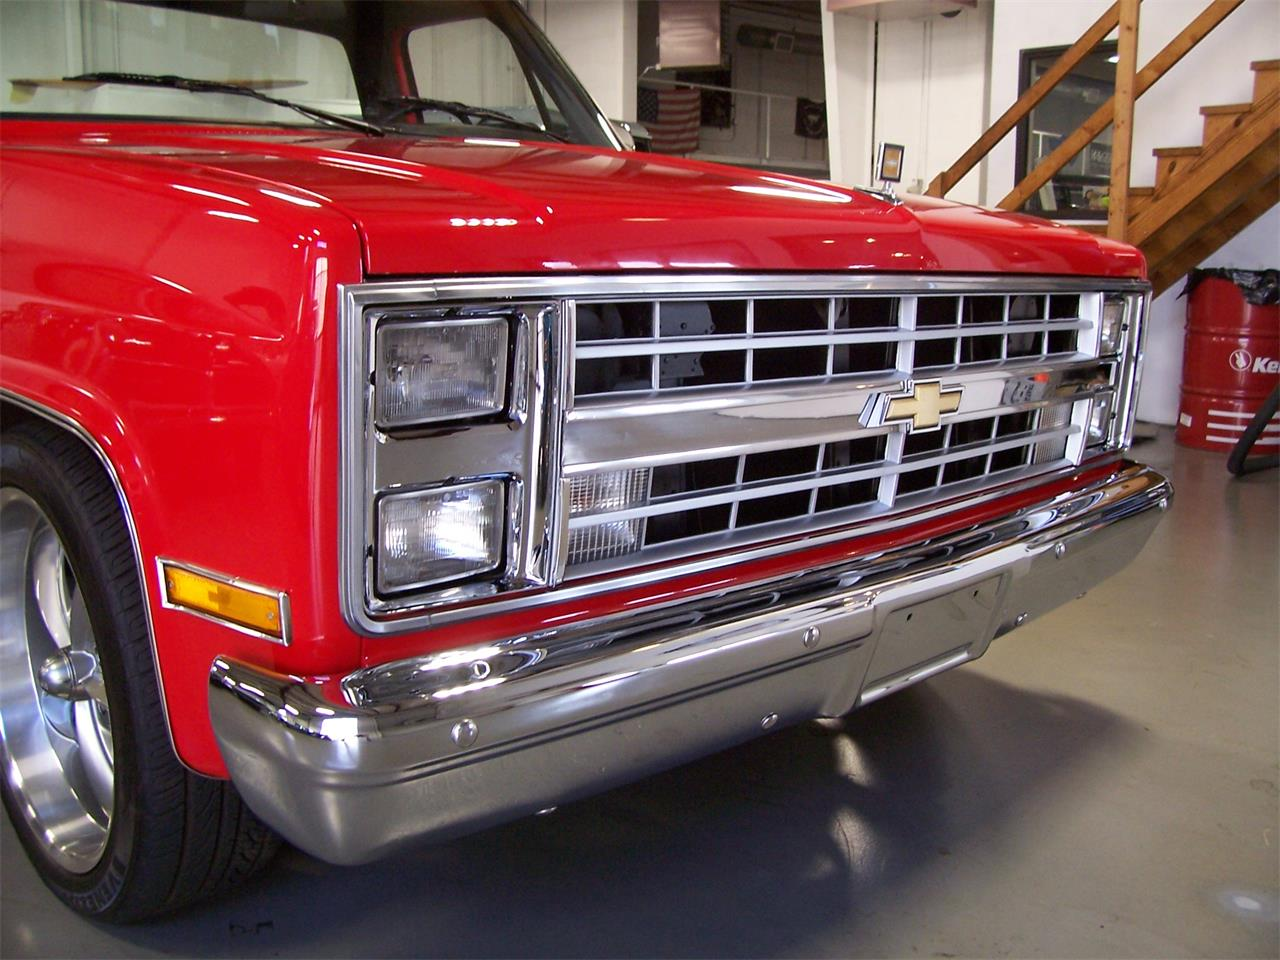 1985 Chevrolet C/K 10 for sale in Alpharetta, GA – photo 24